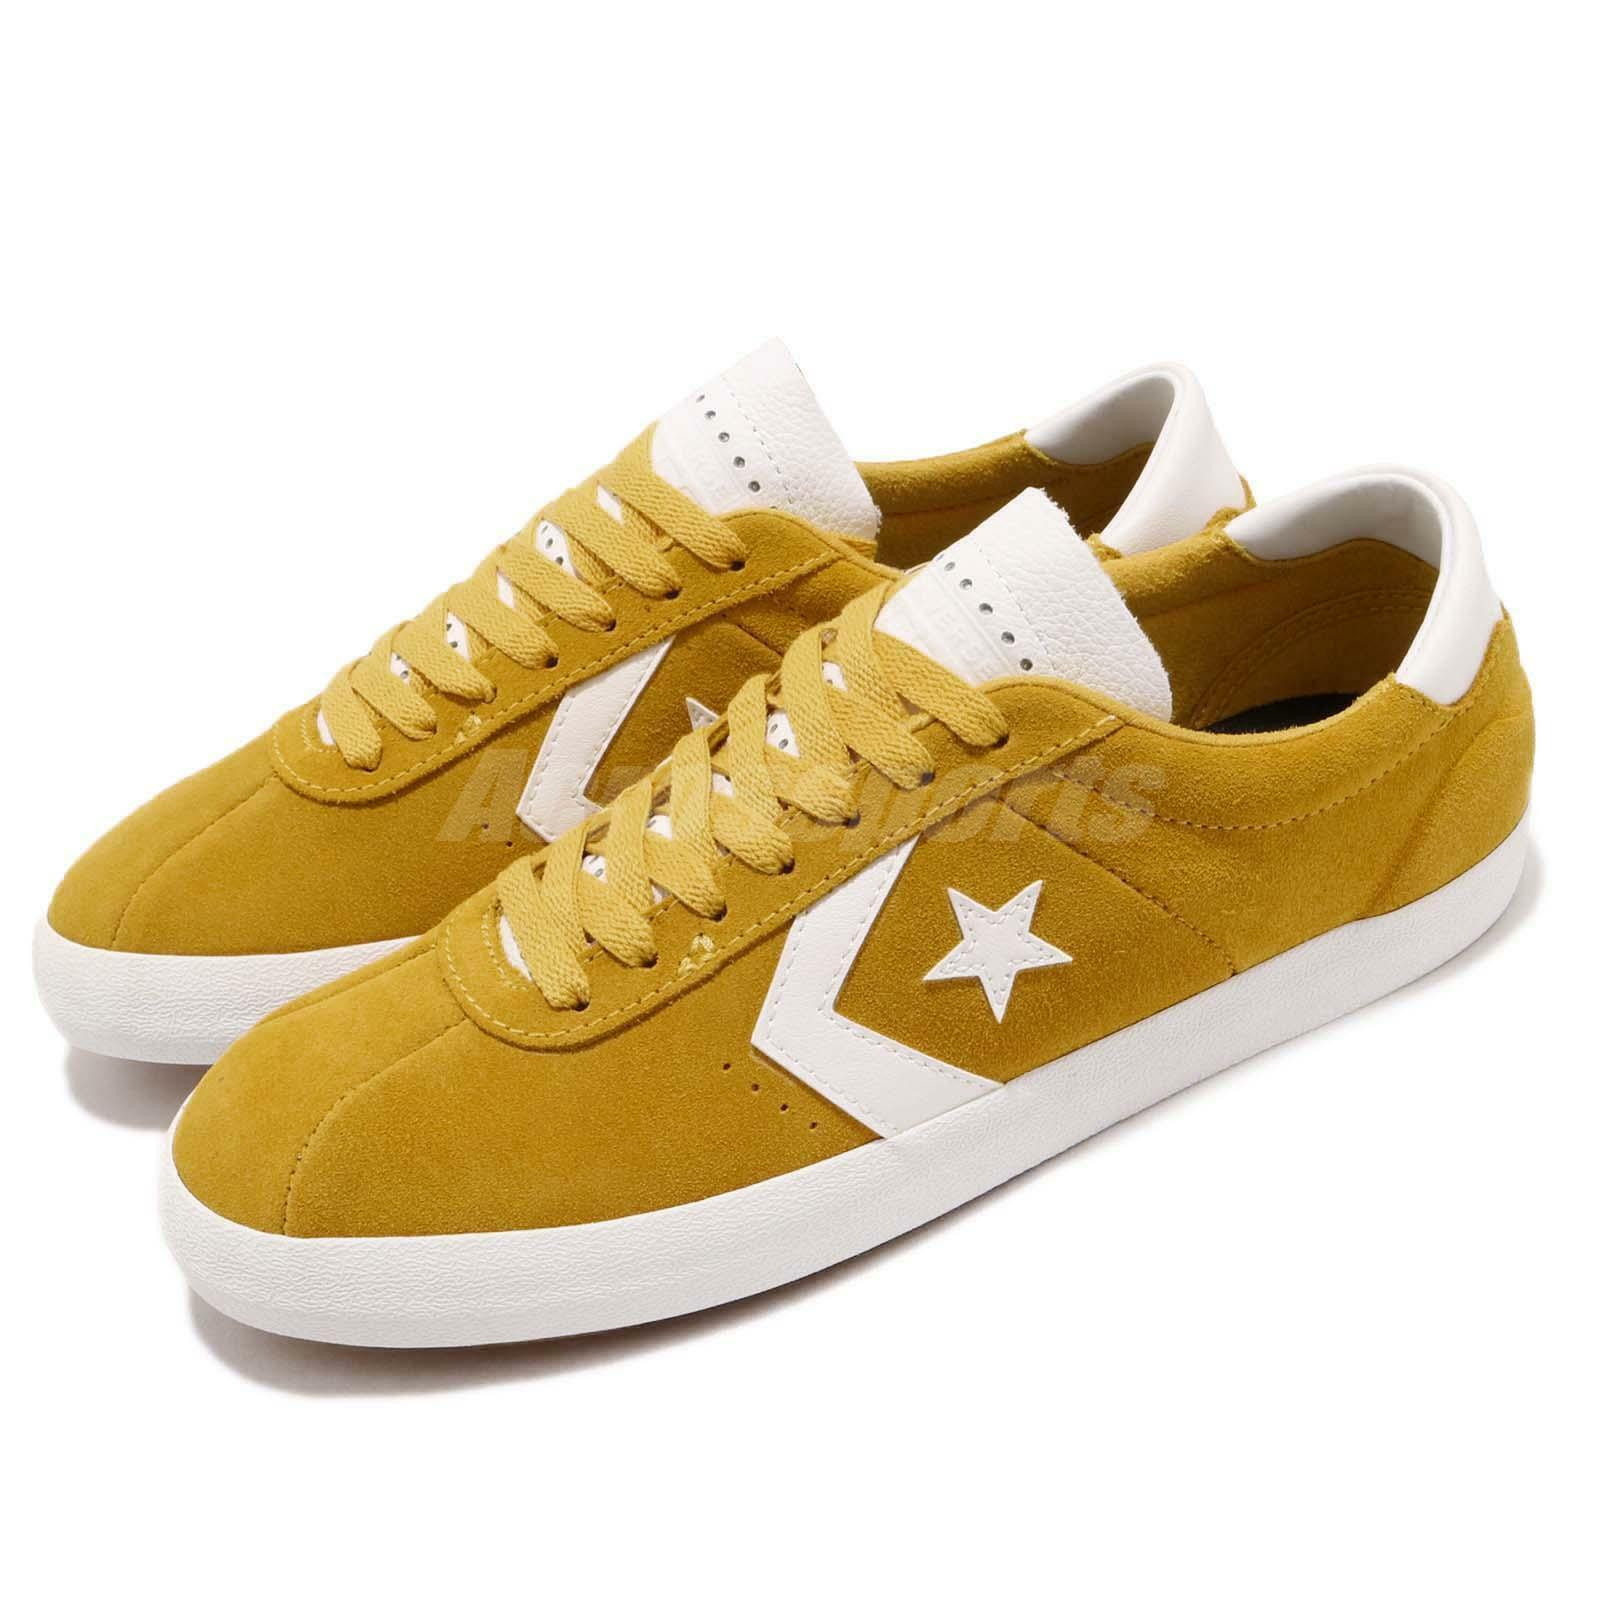 Converse Breakpoint Pro Yellow White Suede Hommes  Casual Casual Casual Shoes Sneakers 161528C 3ed7ce